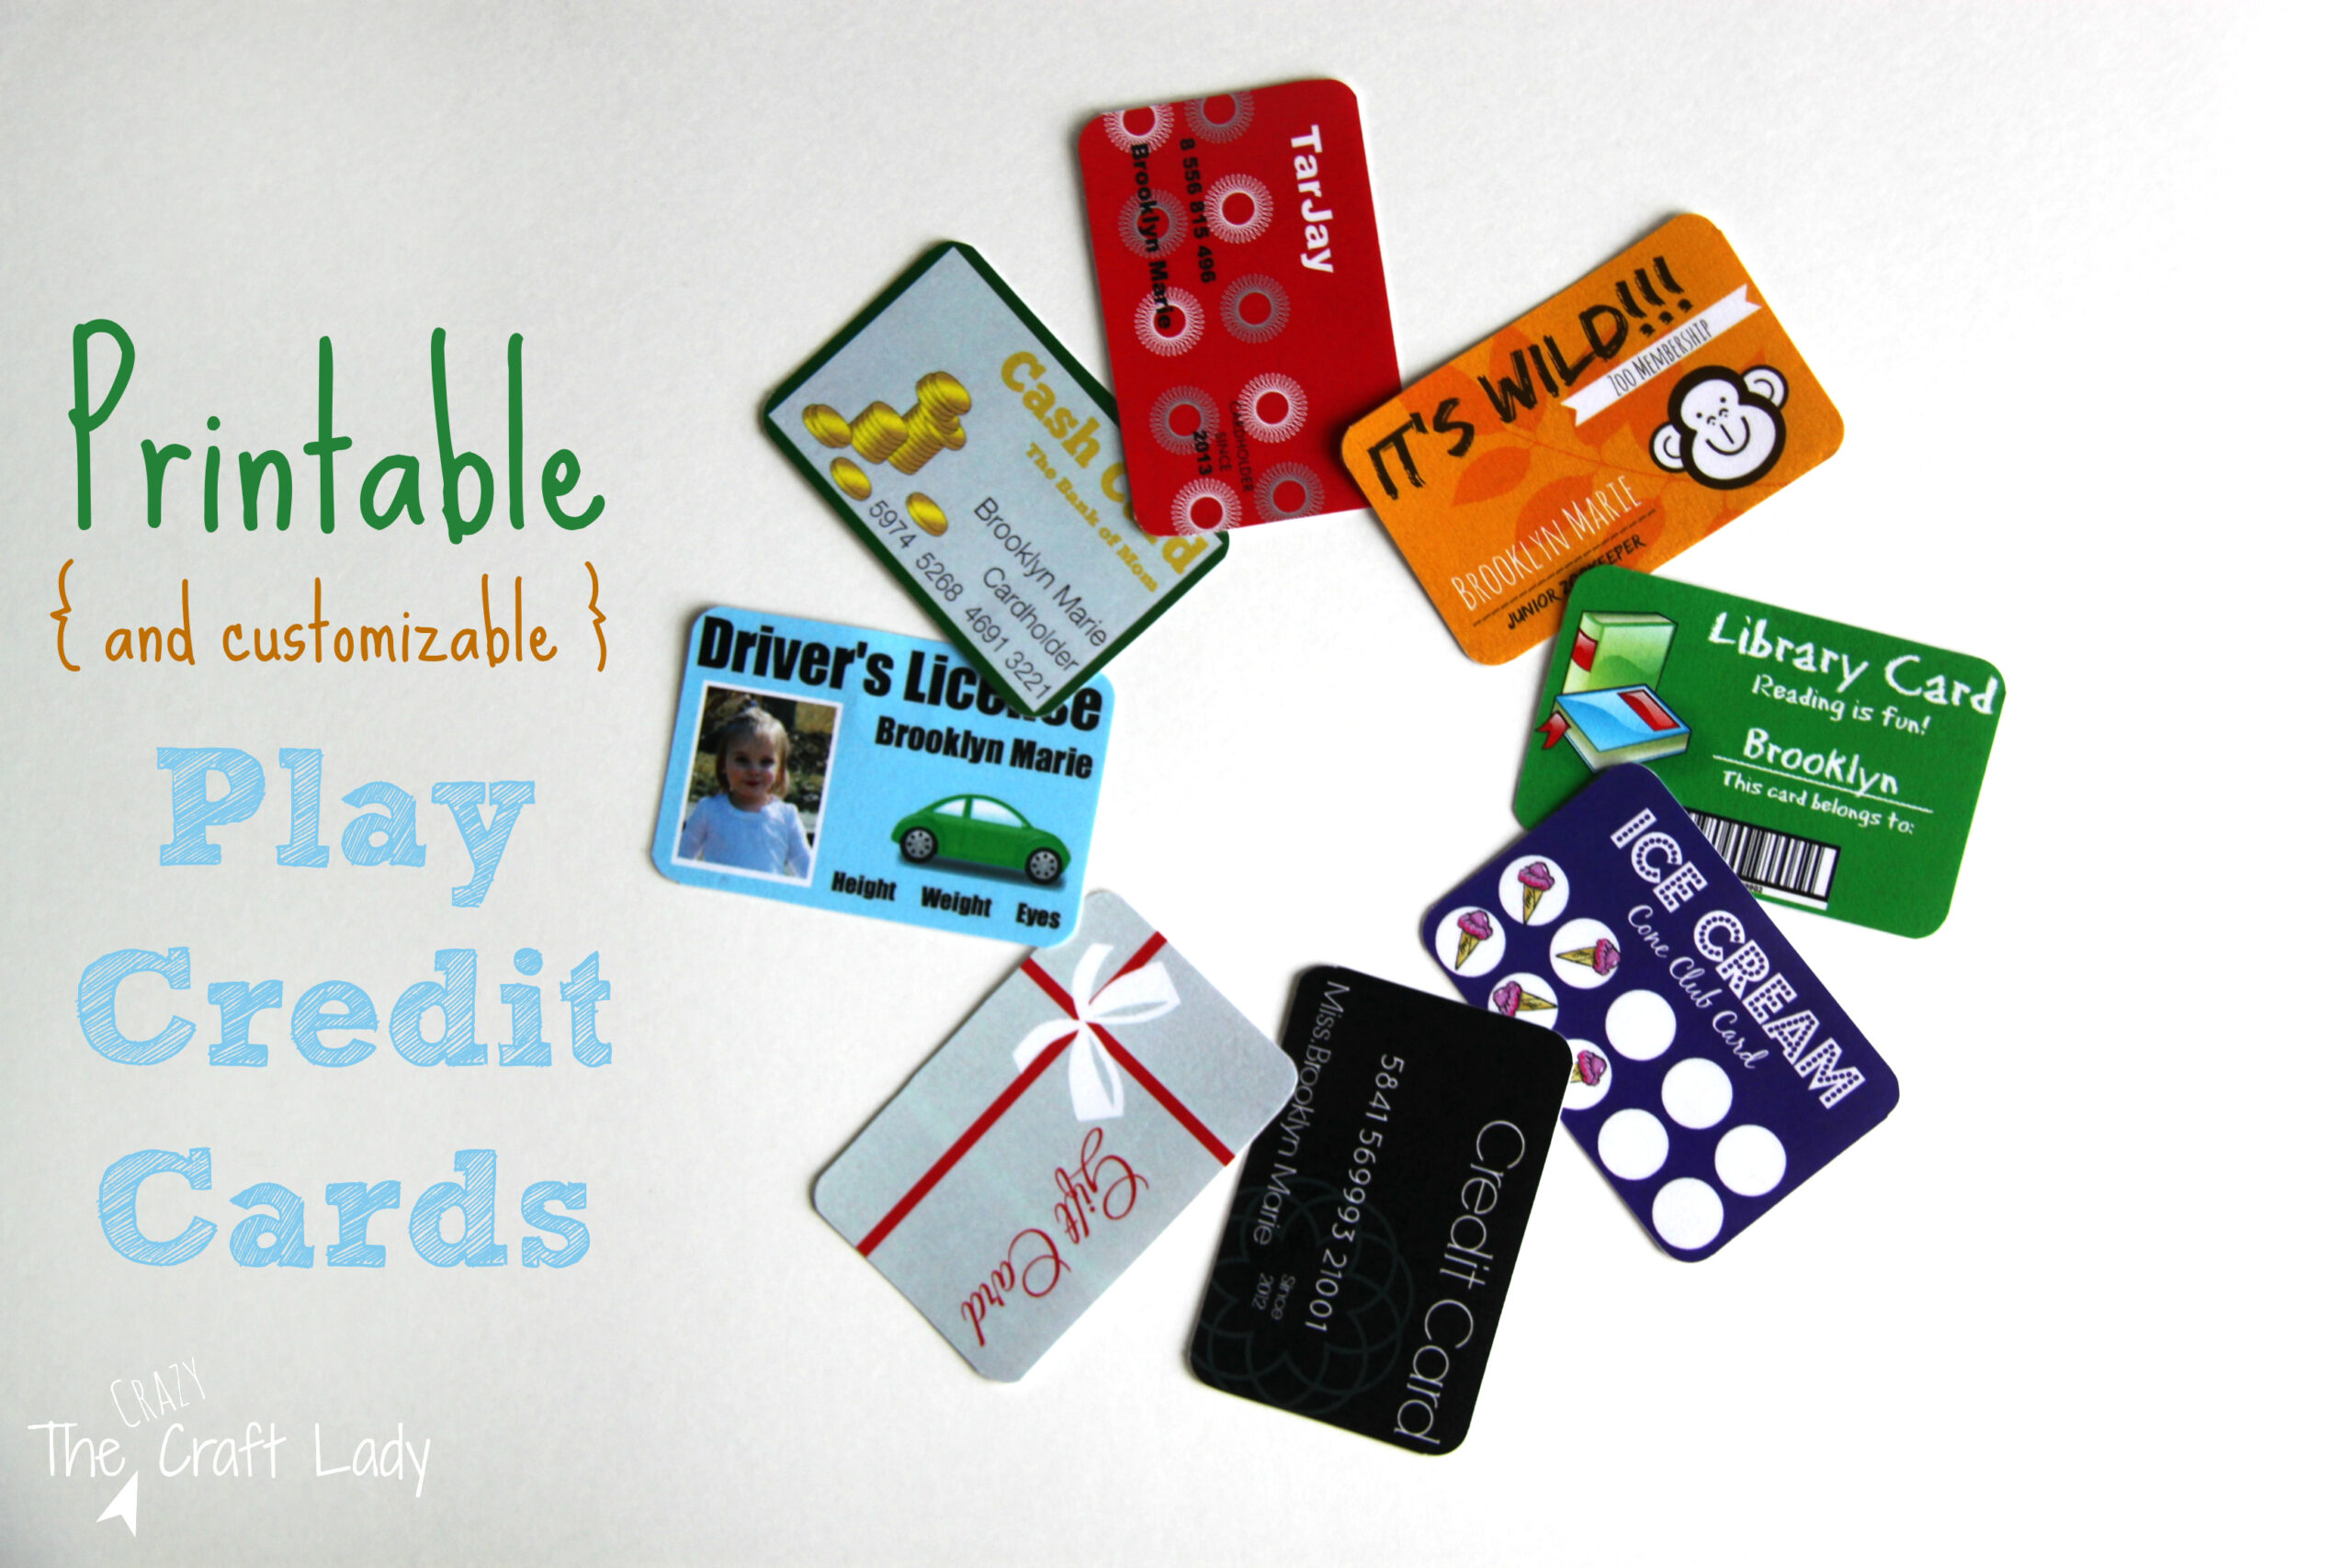 printable and customizable play credit cards   the crazy